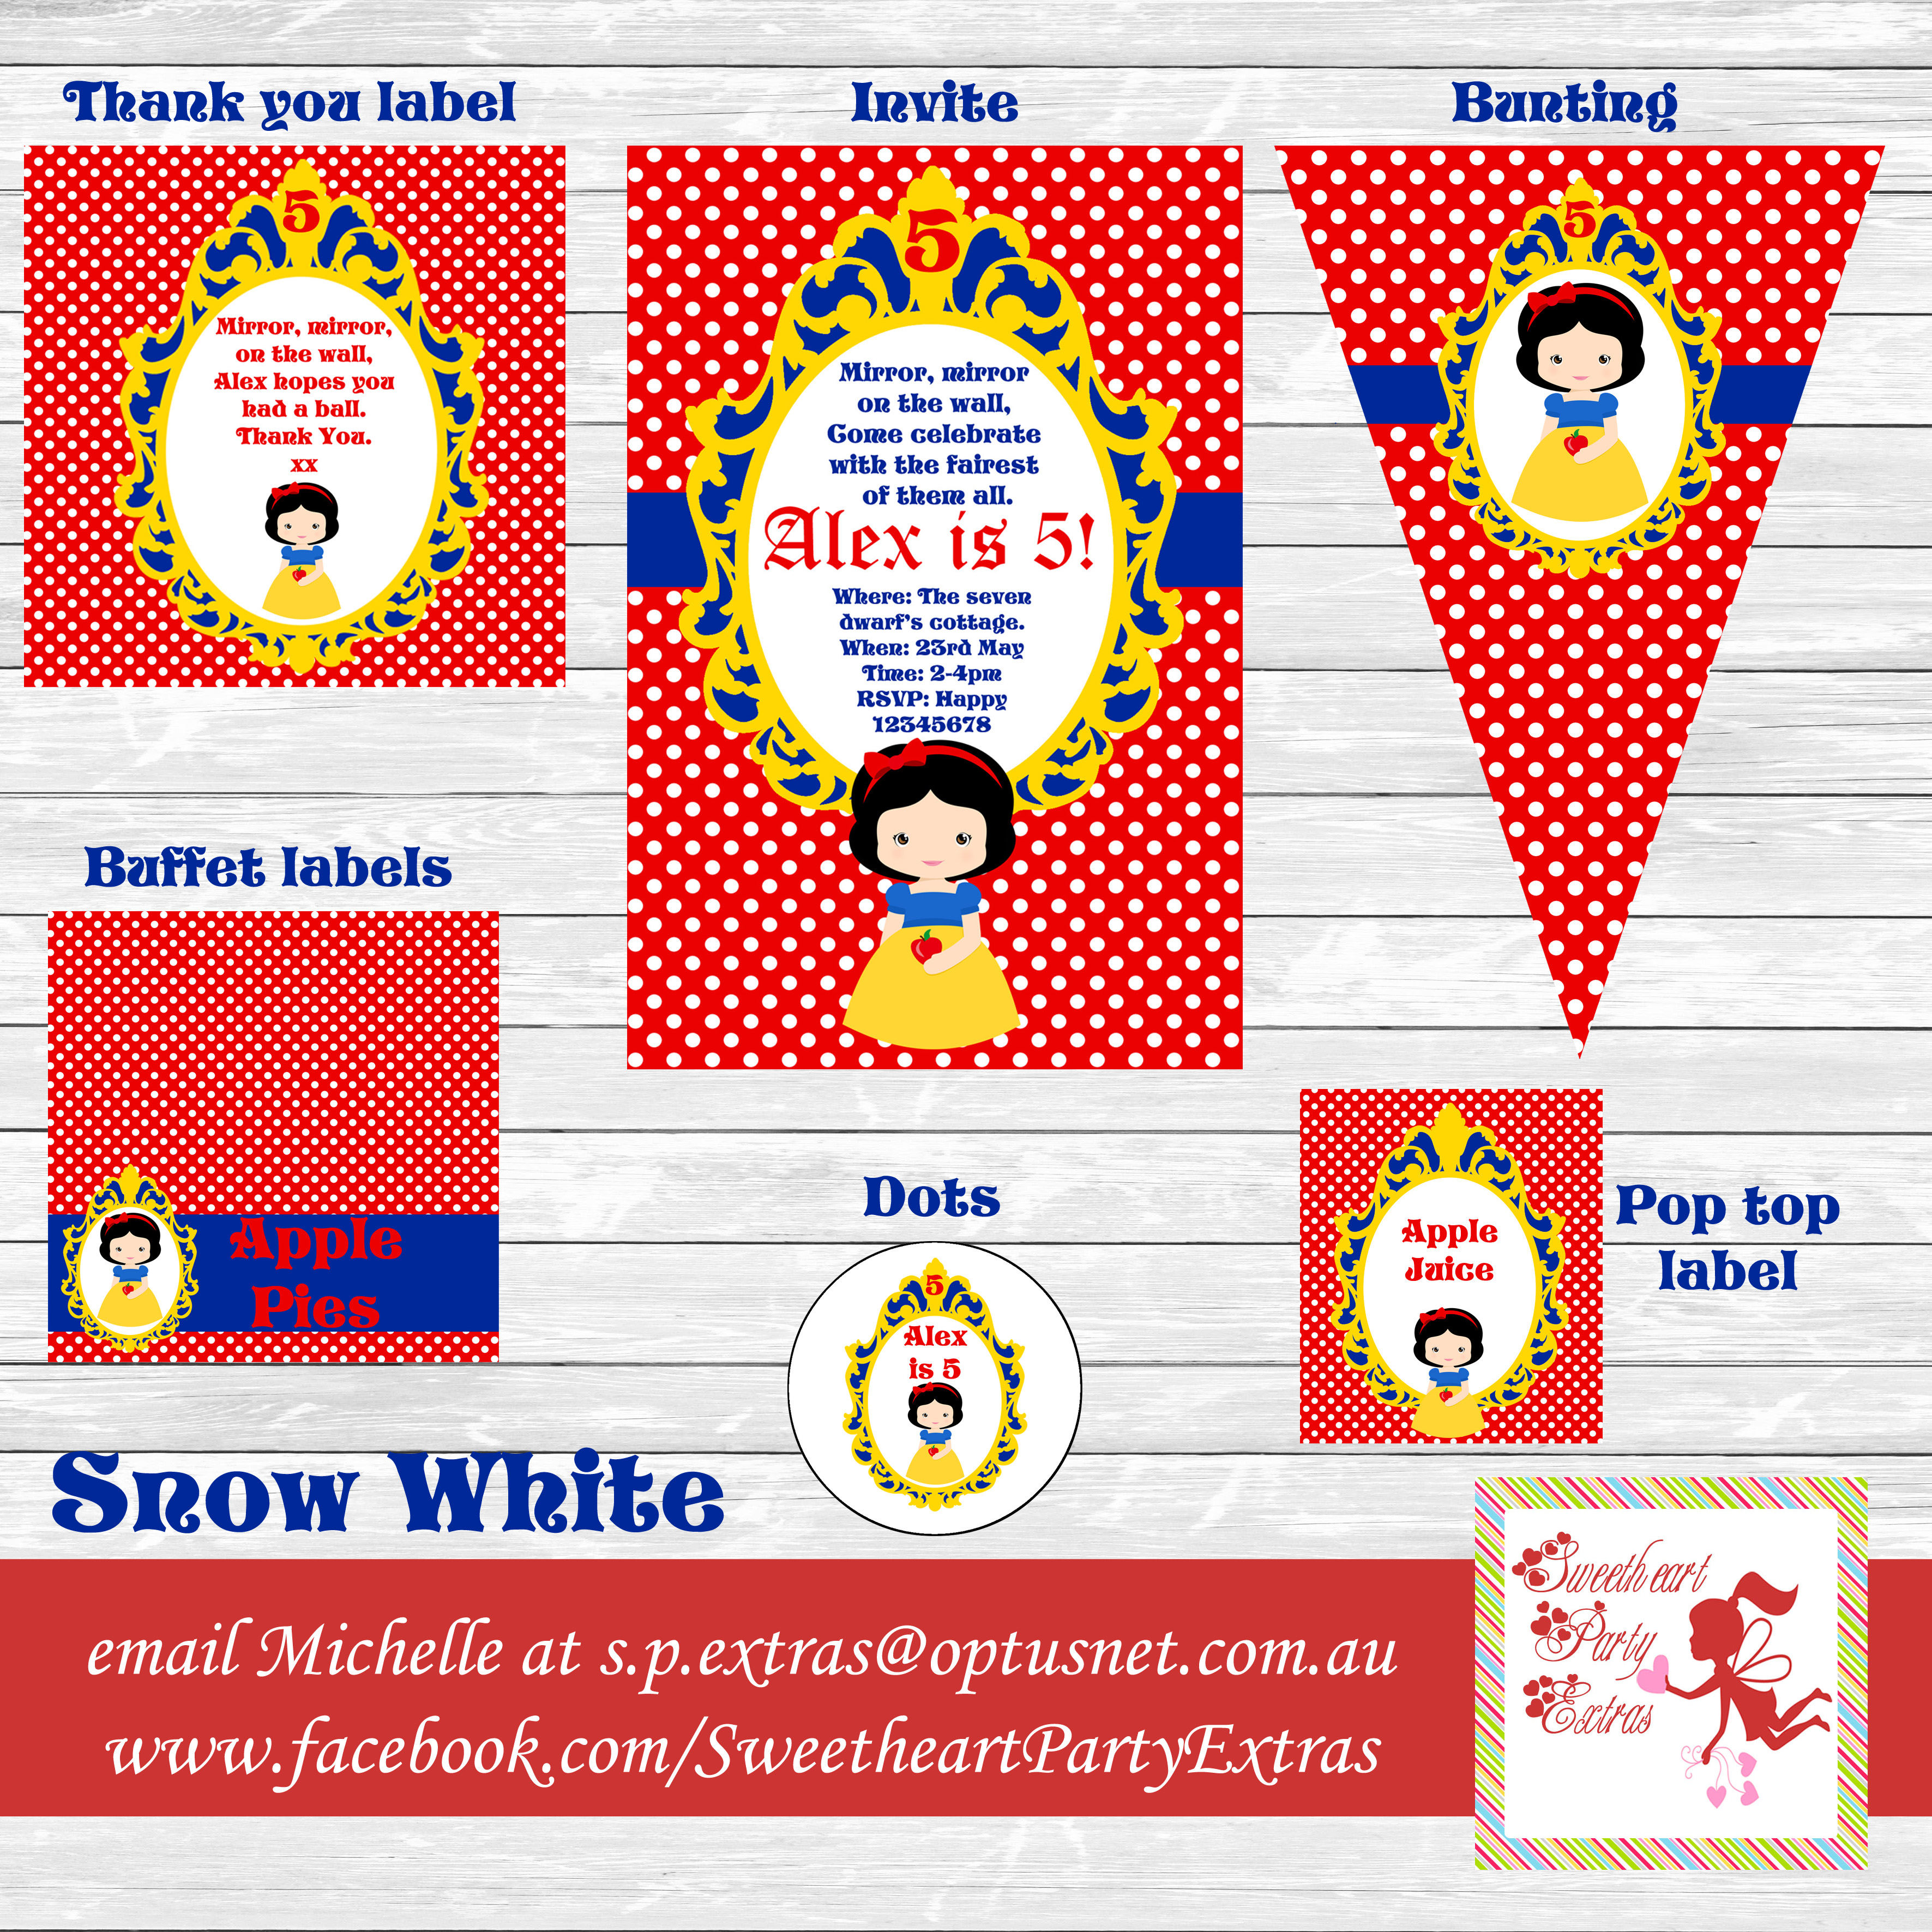 graphic relating to Snow White Invitations Printable titled Snow White concept Archives - Lifes Minor Occasion